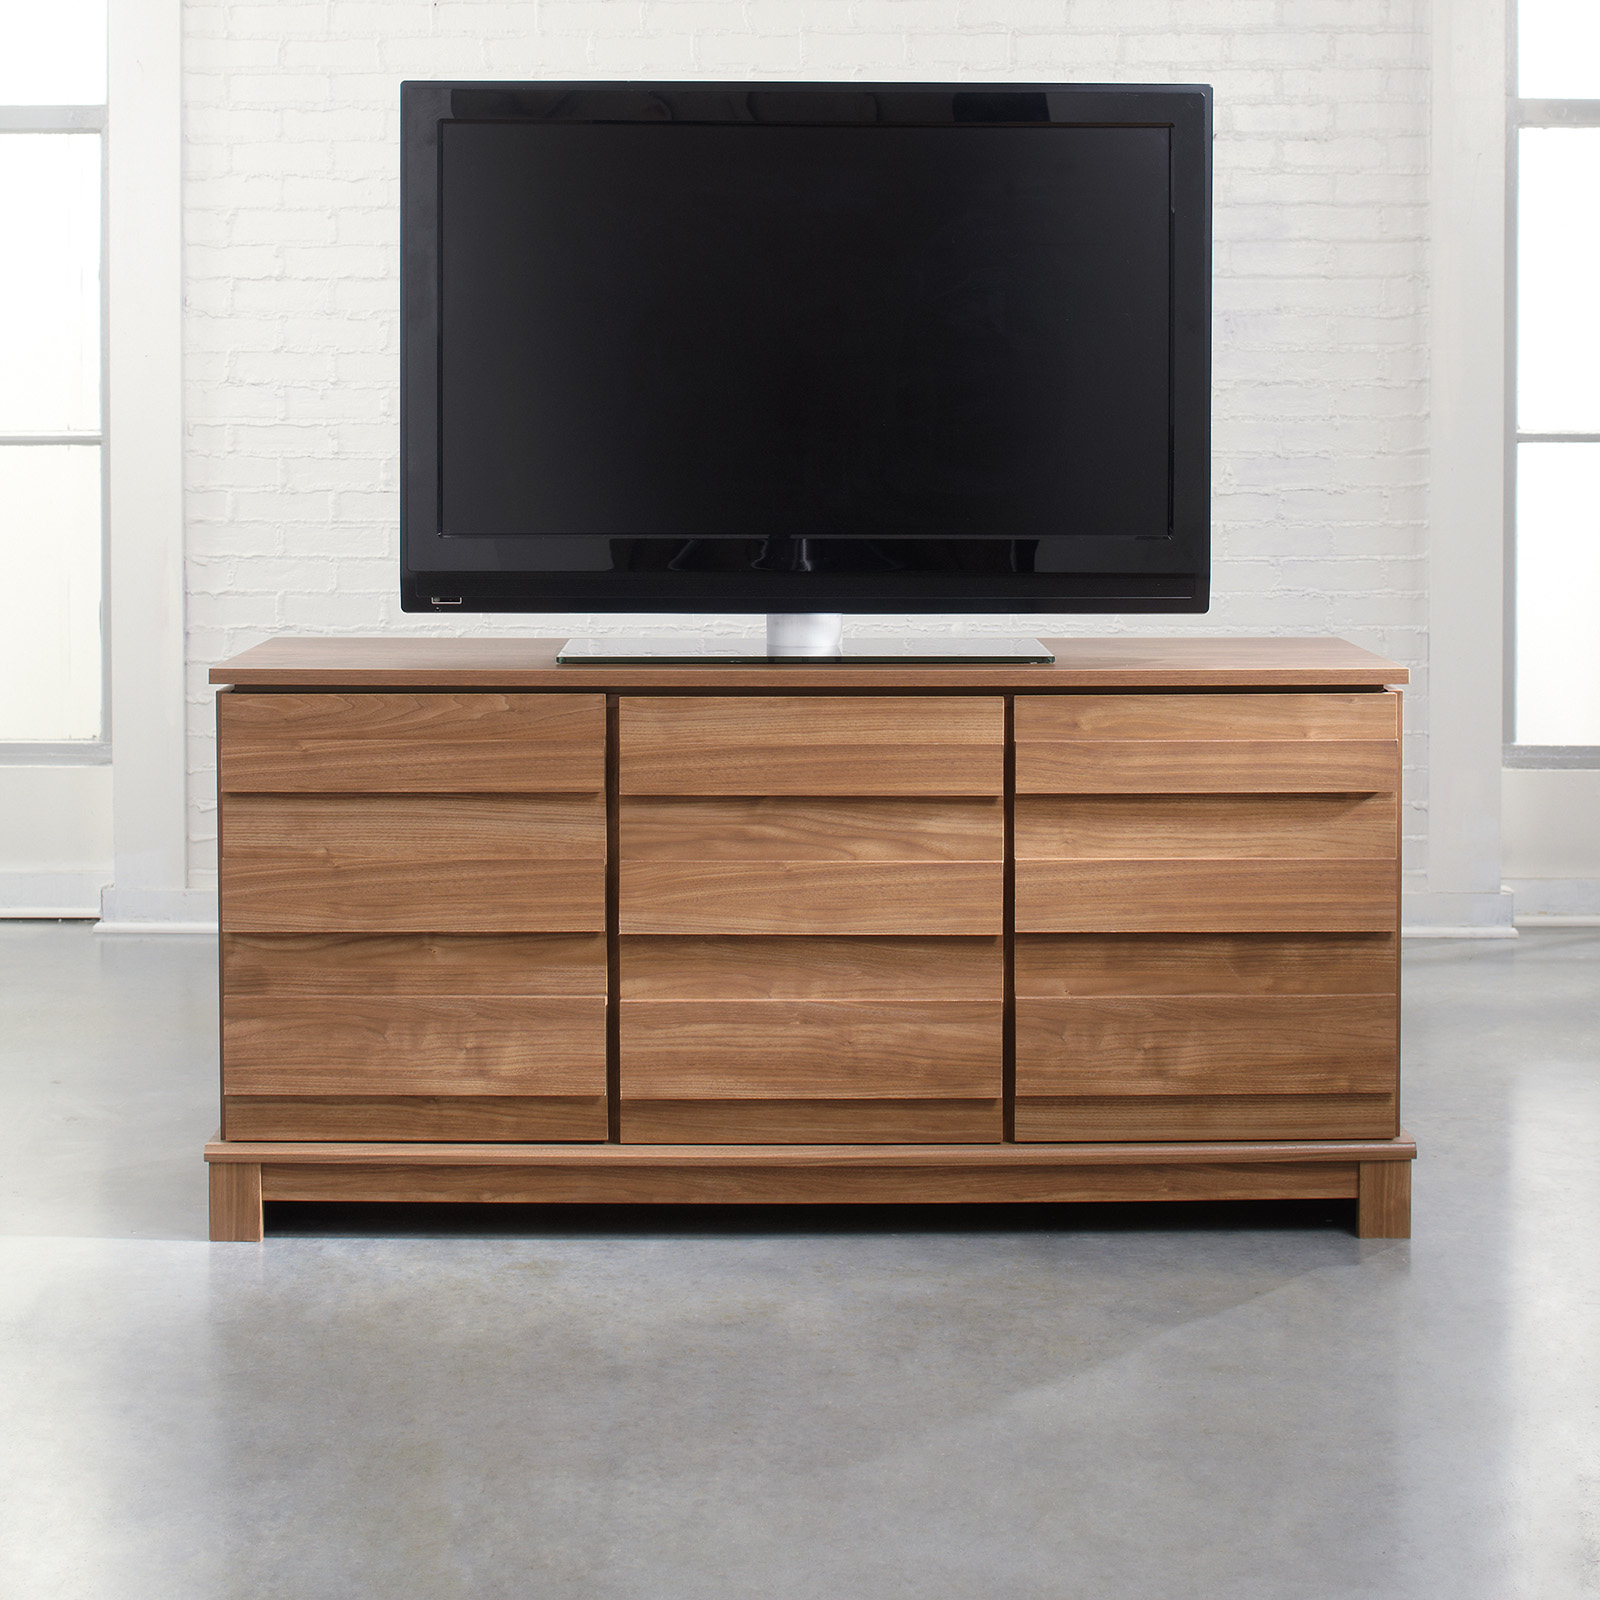 Barrister Lane Corner TV Stand   Salt Oak | Hayneedle